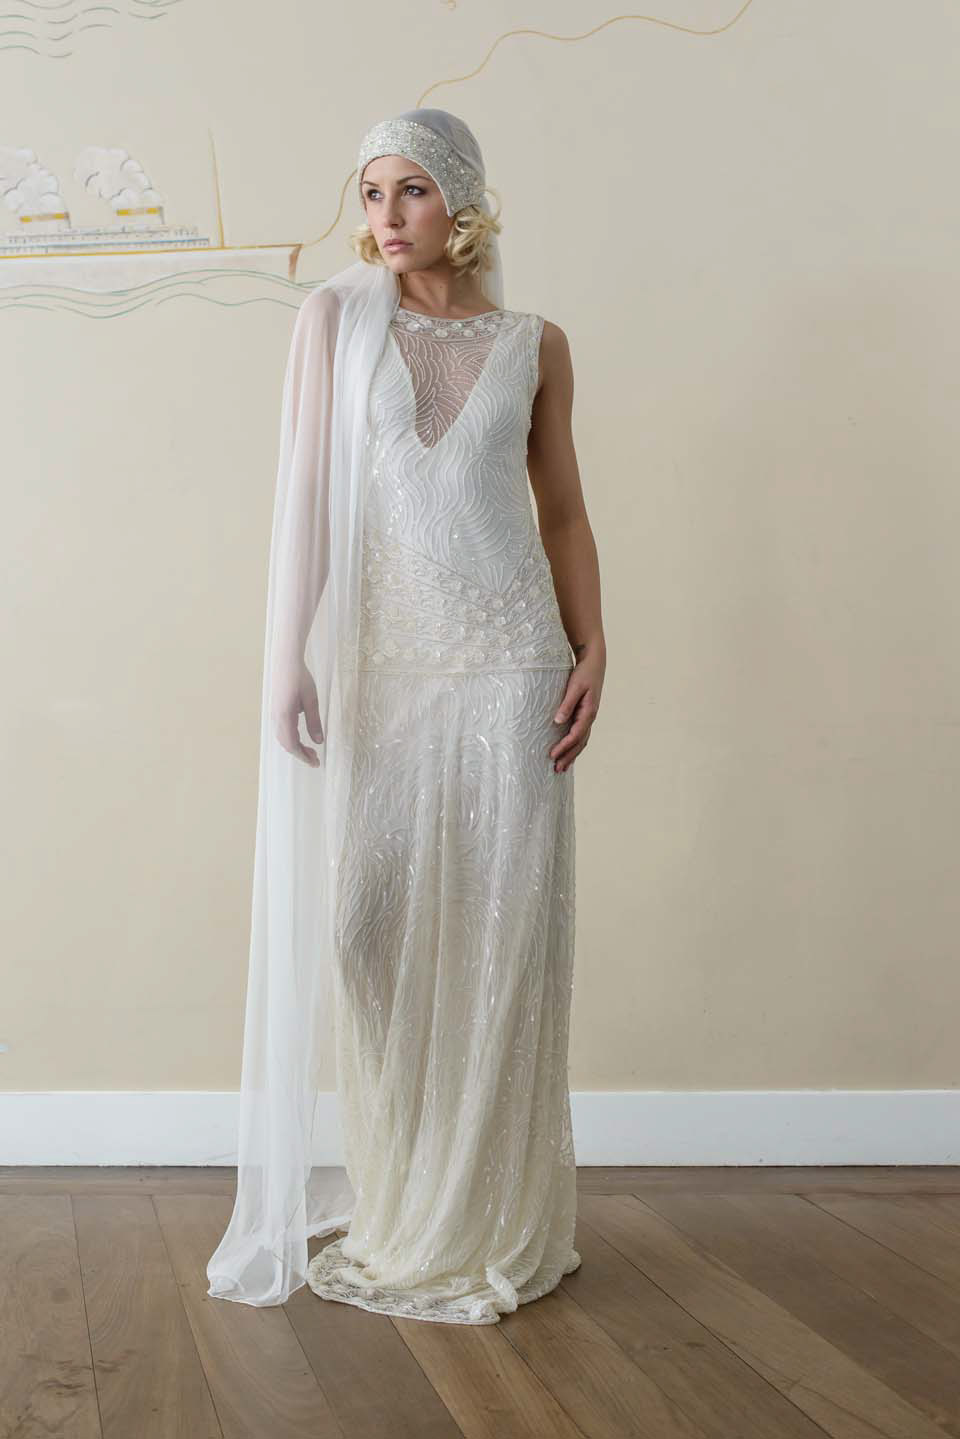 1920s vintage style wedding dresses vicky rowe a debut collection of